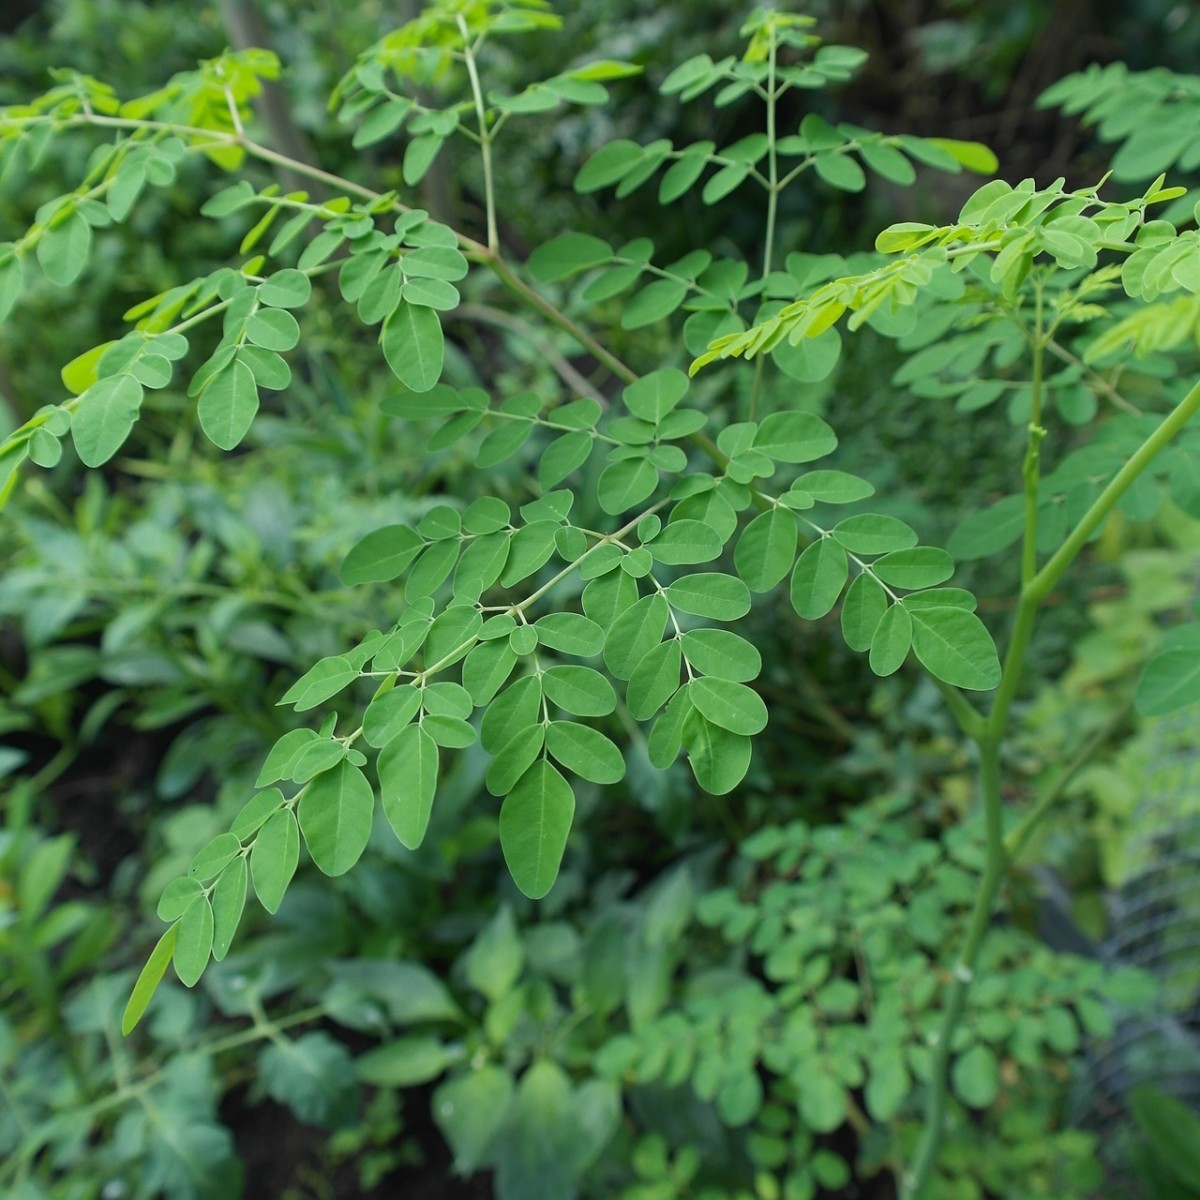 The moringa tree can help treat or potentially prevent or cure more than 300 diseases, including diabetes, hypertension, rheumatism, arthritis, cancer, tumor, anemia, etc.